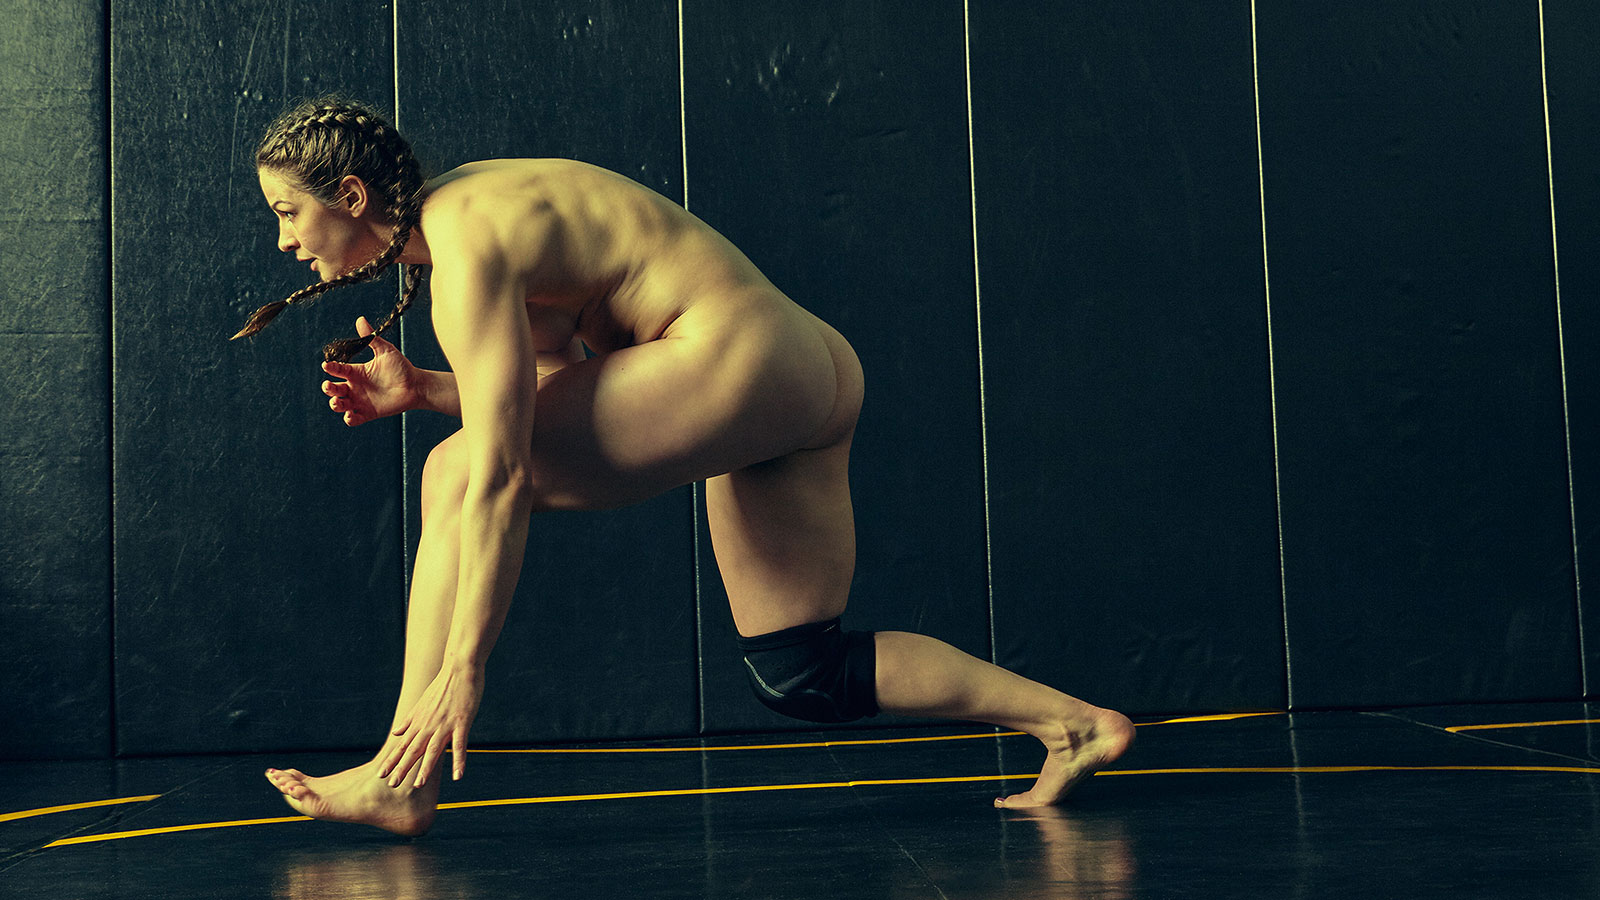 Adeline Gray, Wrestling, featured in the Body Issue 2016: Fully Exposed on ESPN the Magazine